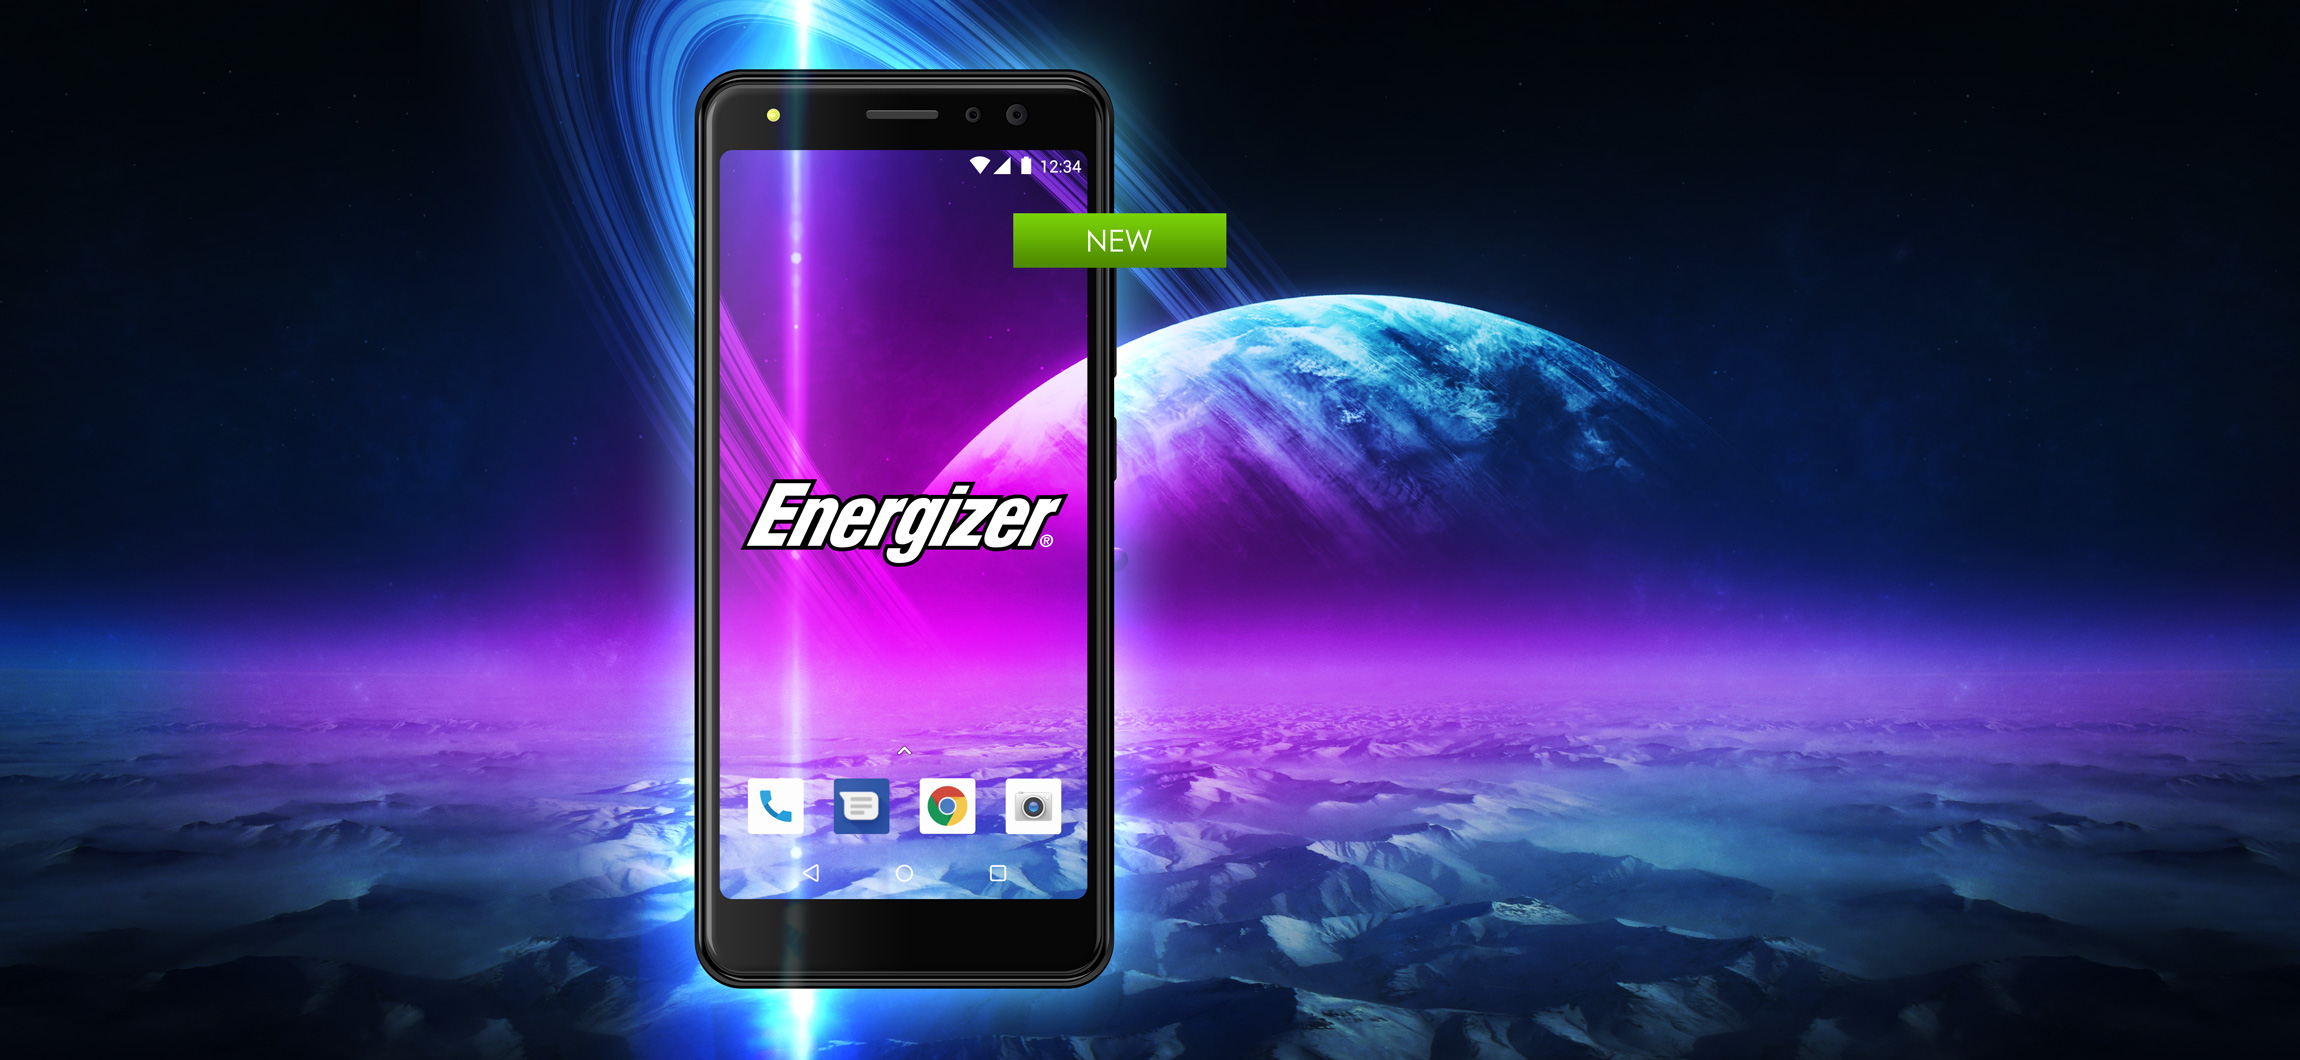 Energizer Mobile: Home